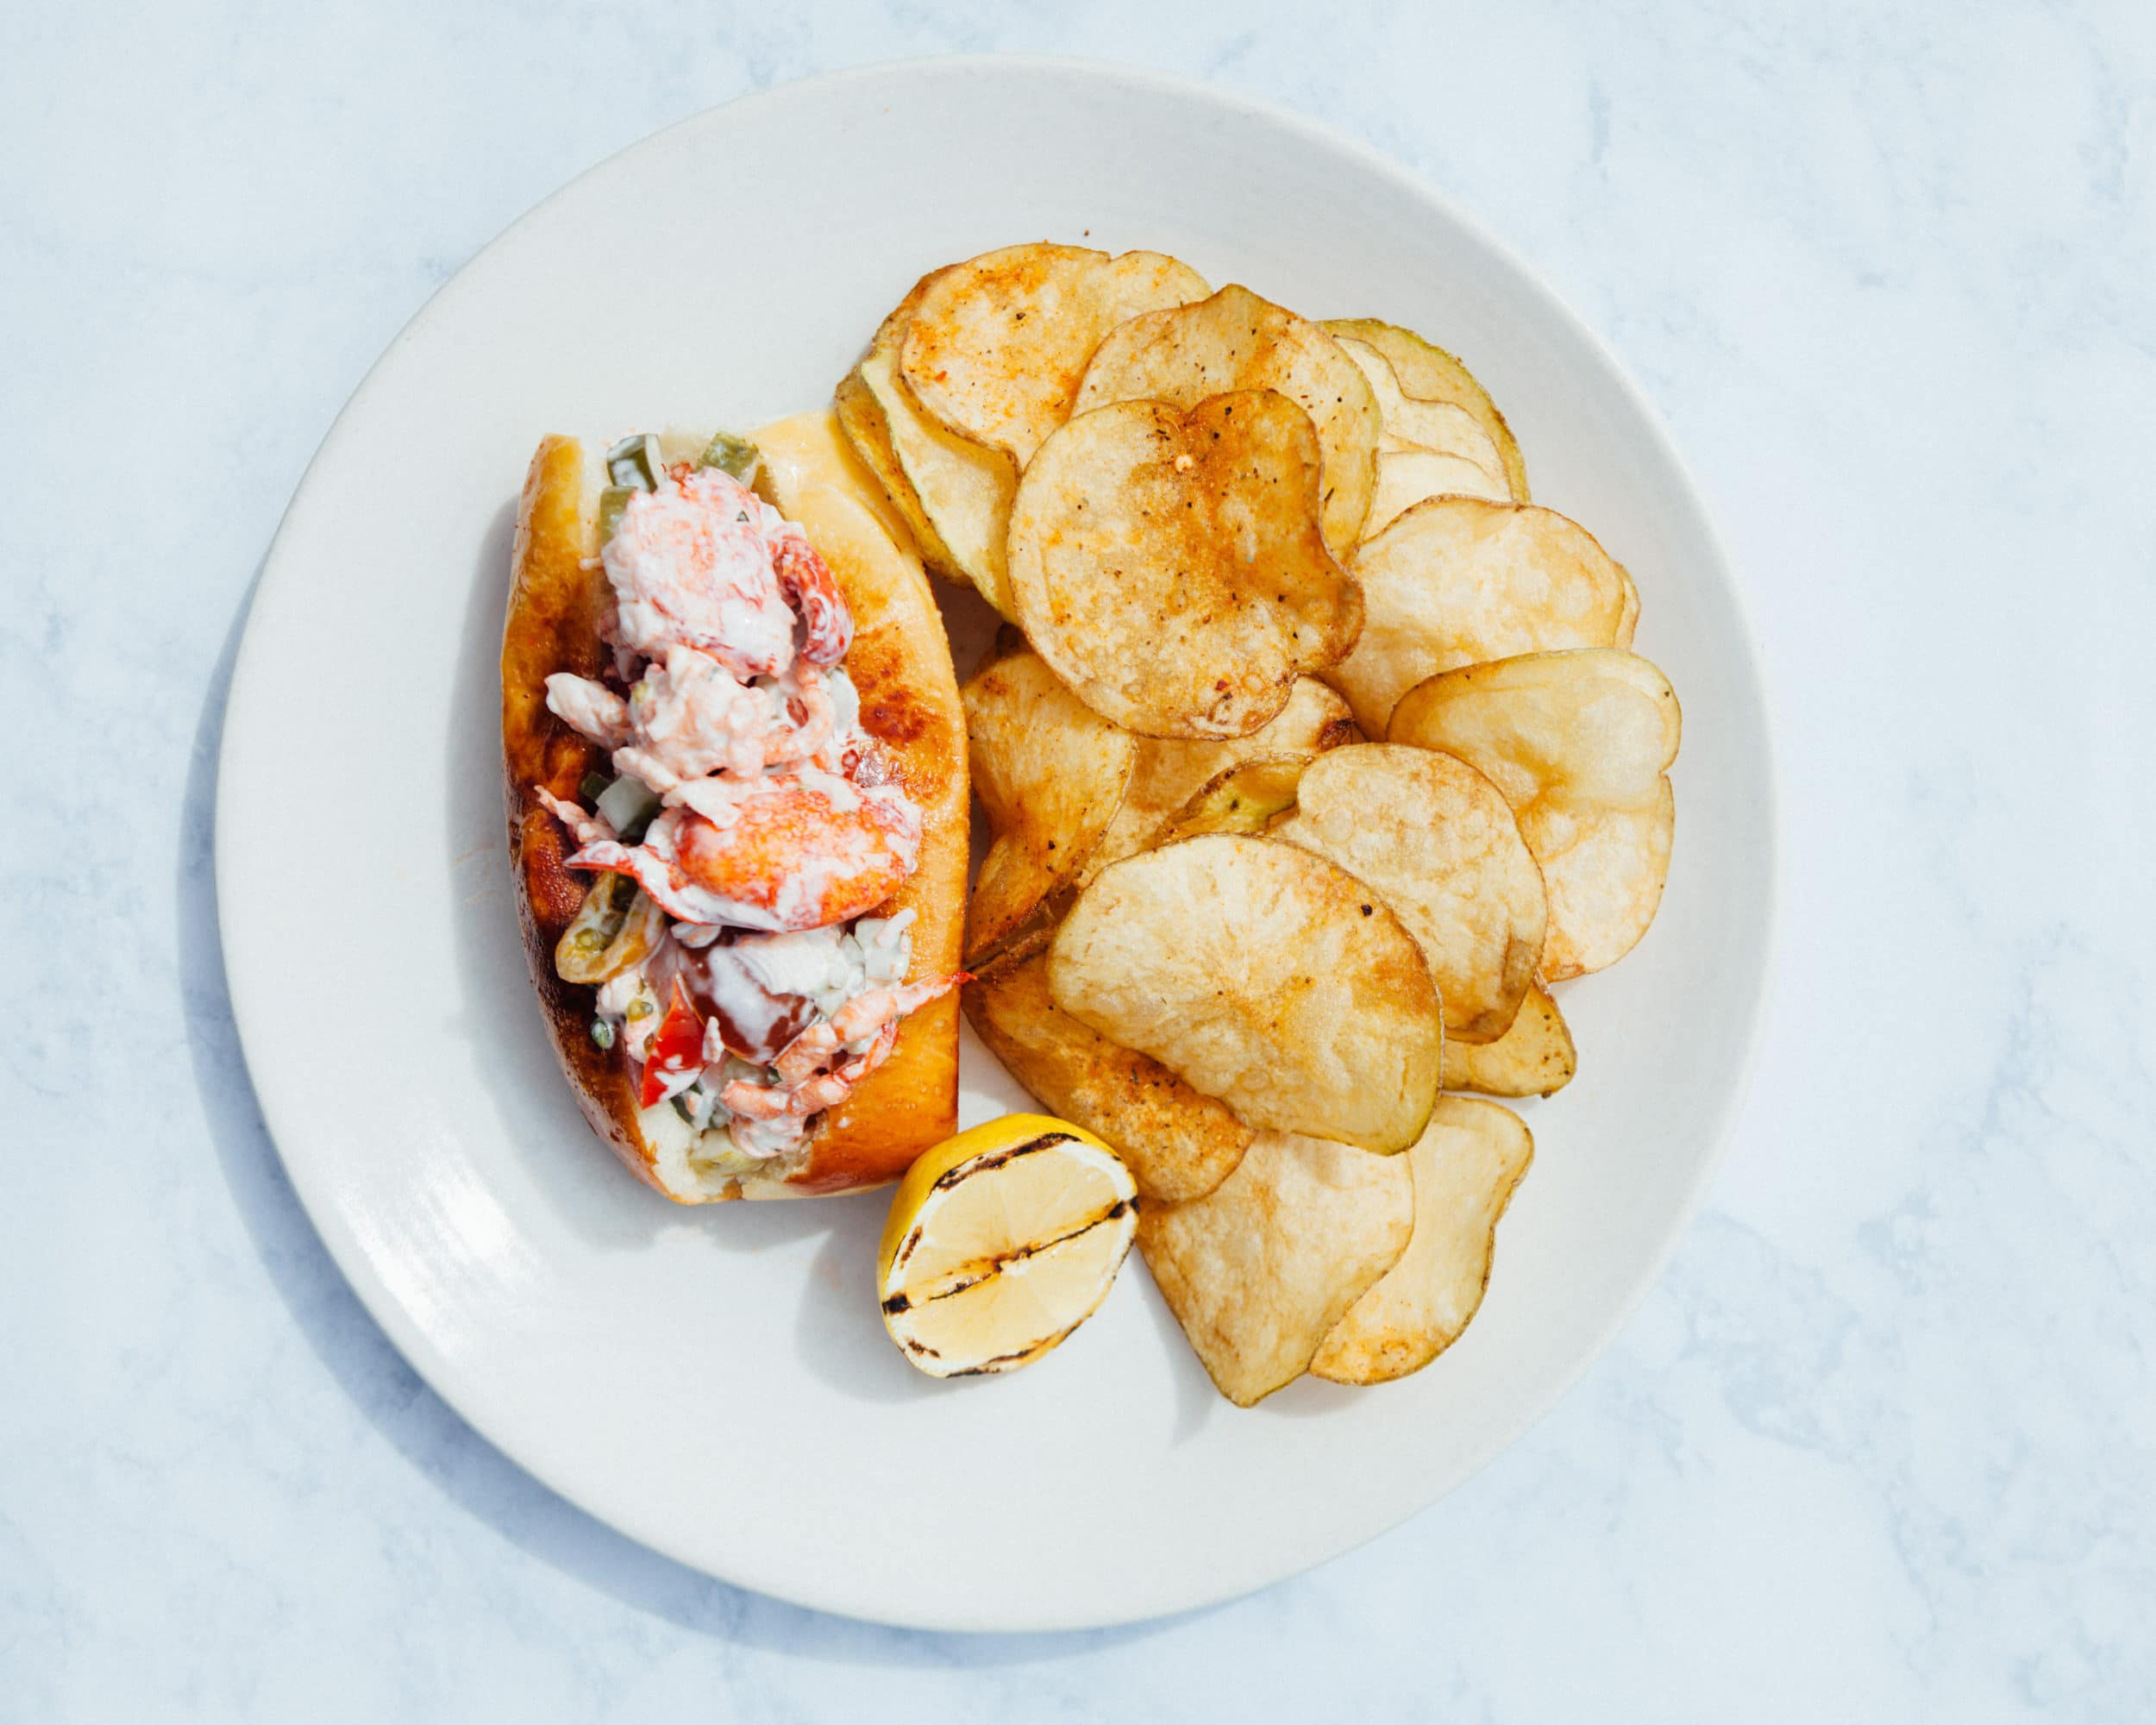 Herringbone La Jolla: Lobster Roll